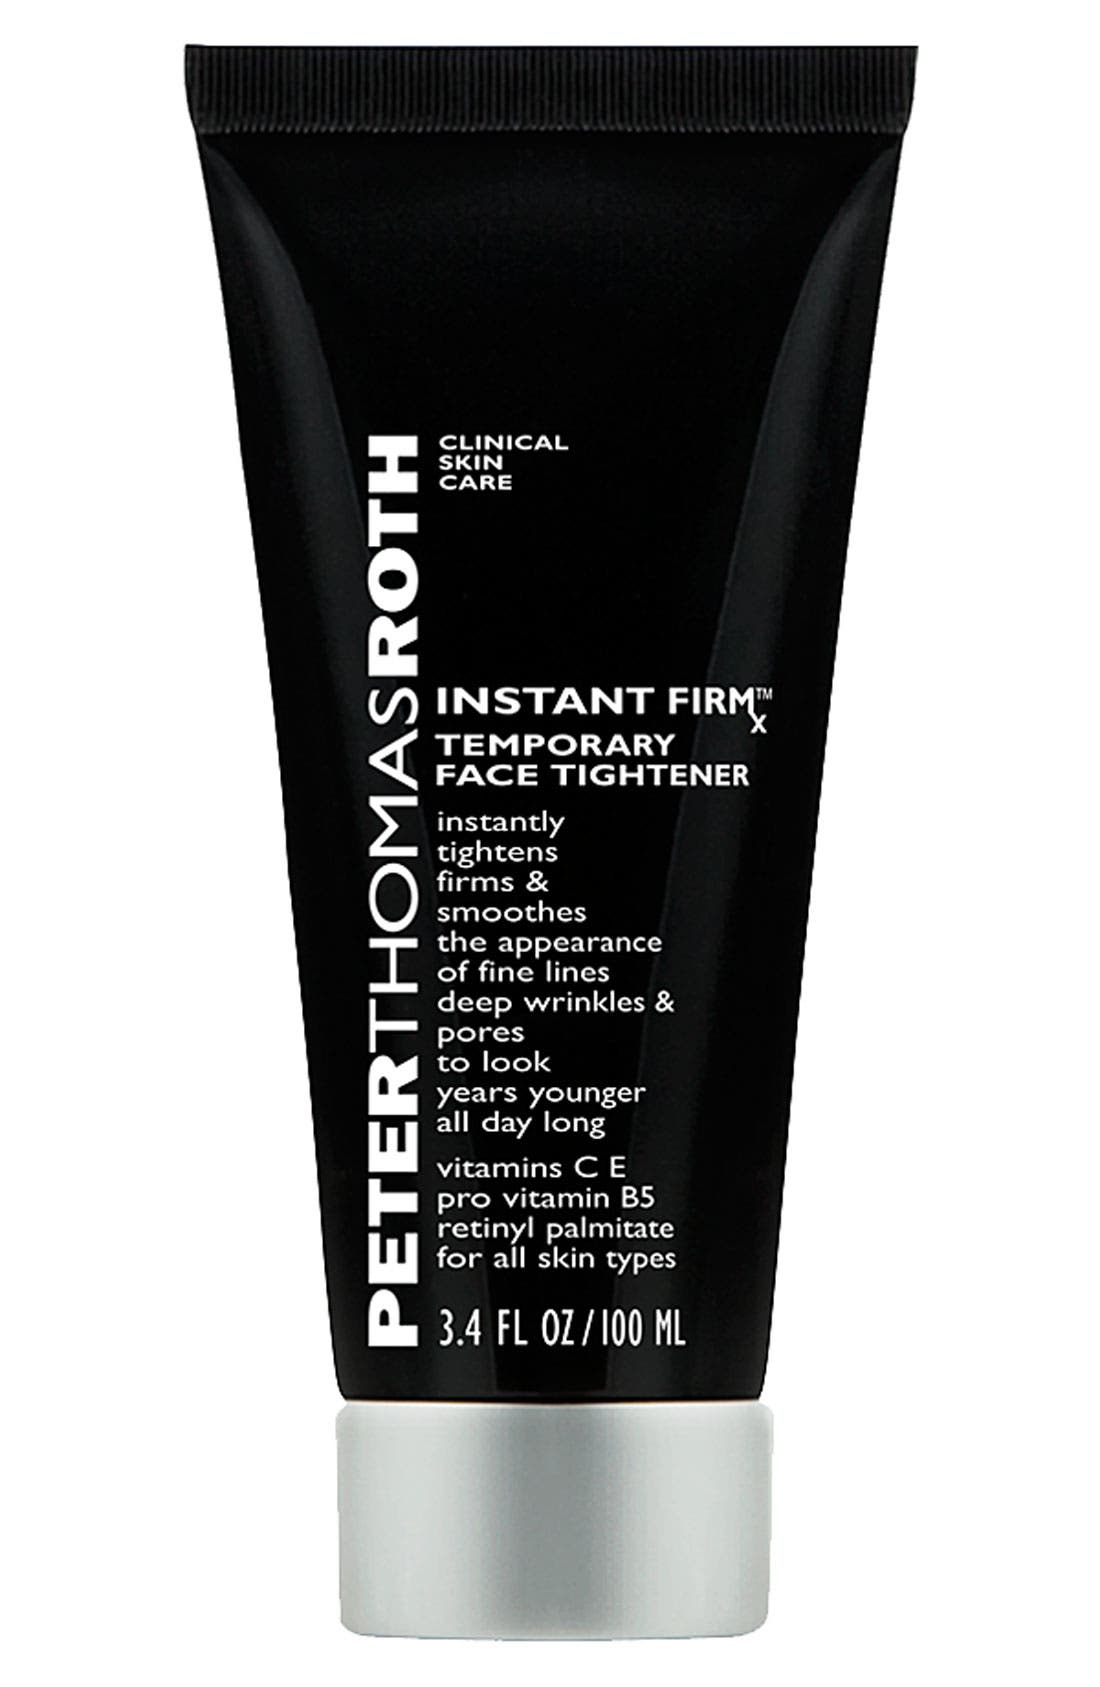 Peter Thomas Roth 'Instant FIRMx' Temporary Face Tightener